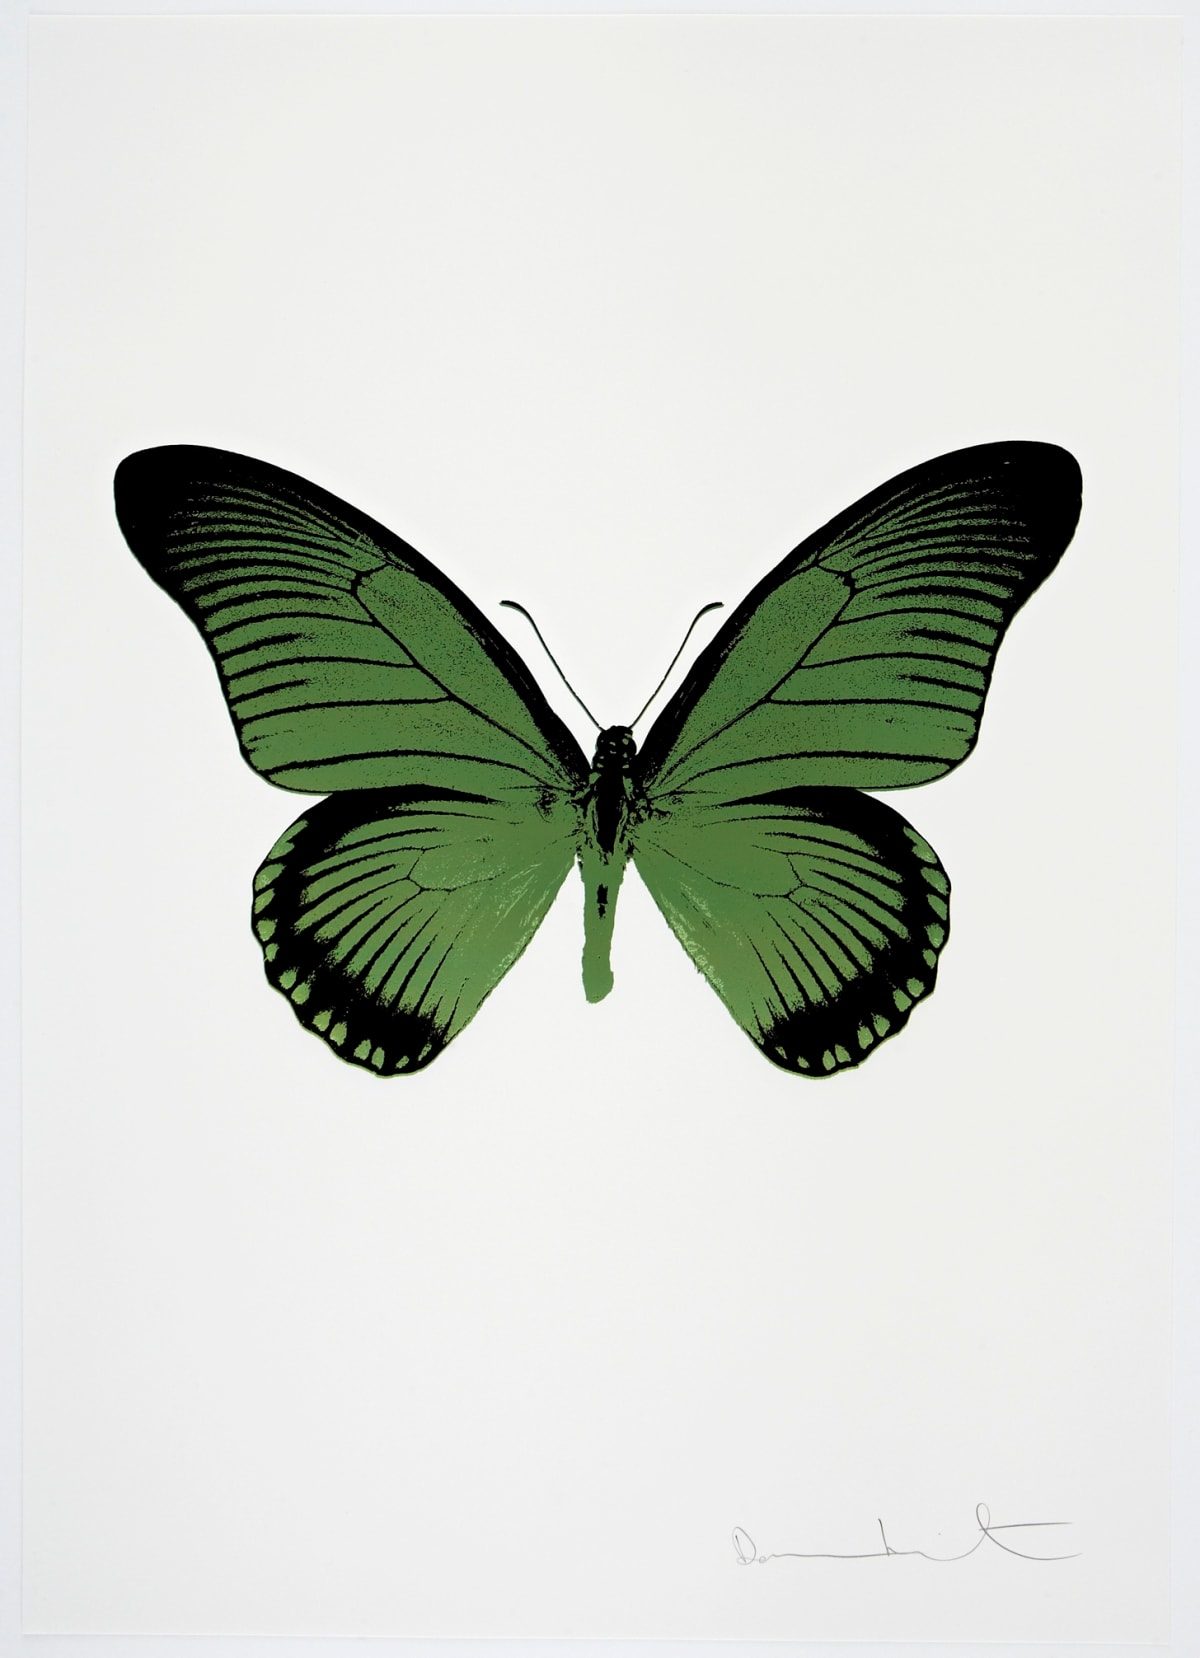 Damien Hirst The Souls IV - Leaf Green/Raven Black, 2010 2 colour foil block on 300gsm Arches 88 archival paper. Signed and numbered. Published by Paul Stolper and Other Criteria 72 x 51cm OC7979 / 1418-2 Edition of 15